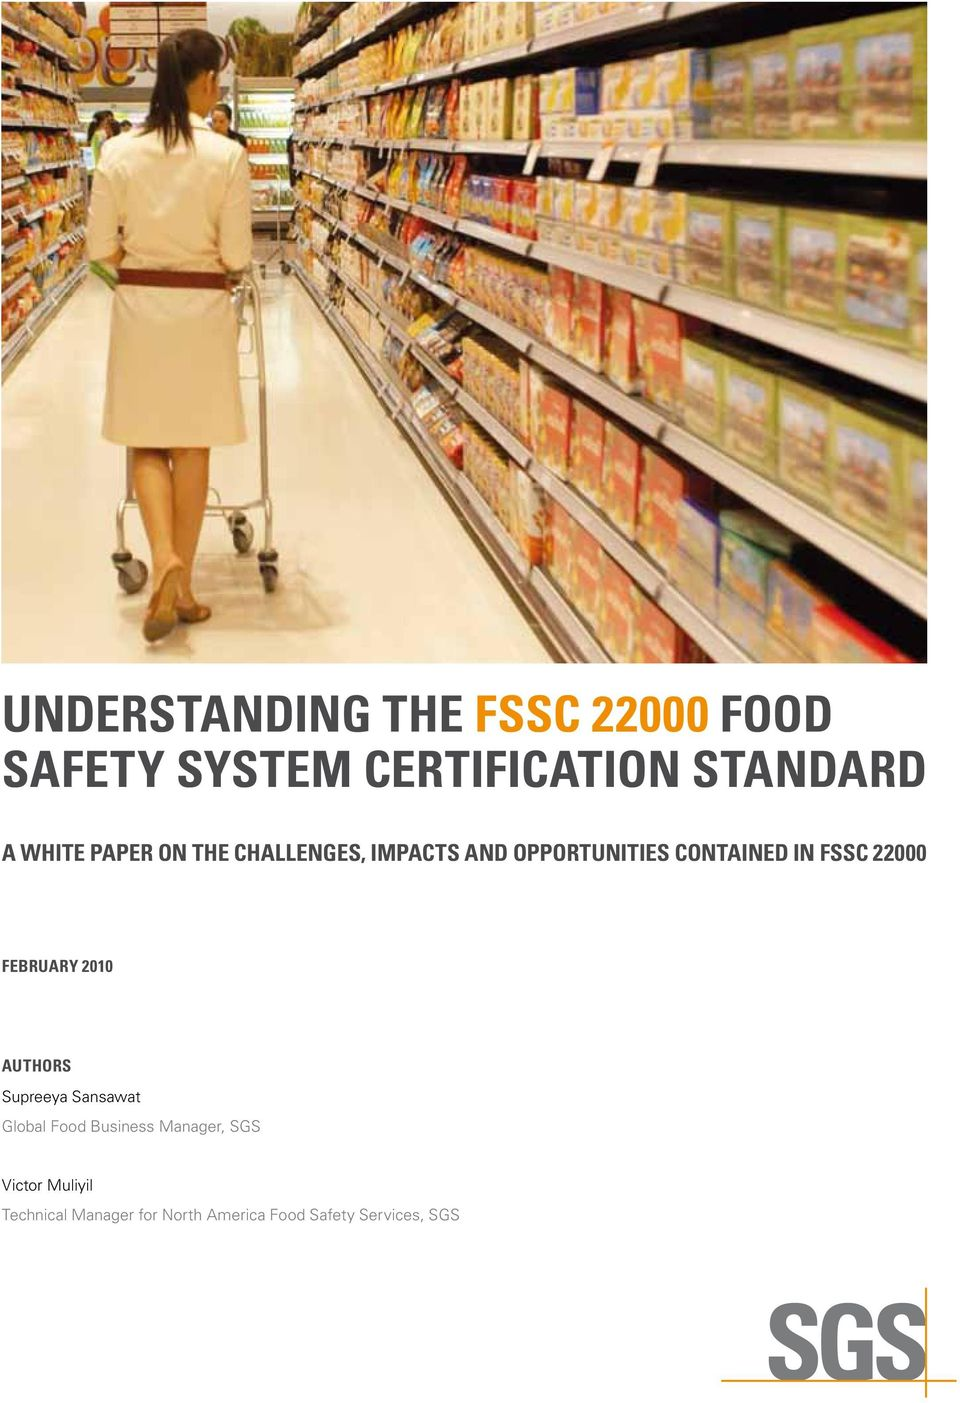 22000 FEBRUARY 2010 AUTHORS Supreeya Sansawat Global Food Business Manager,